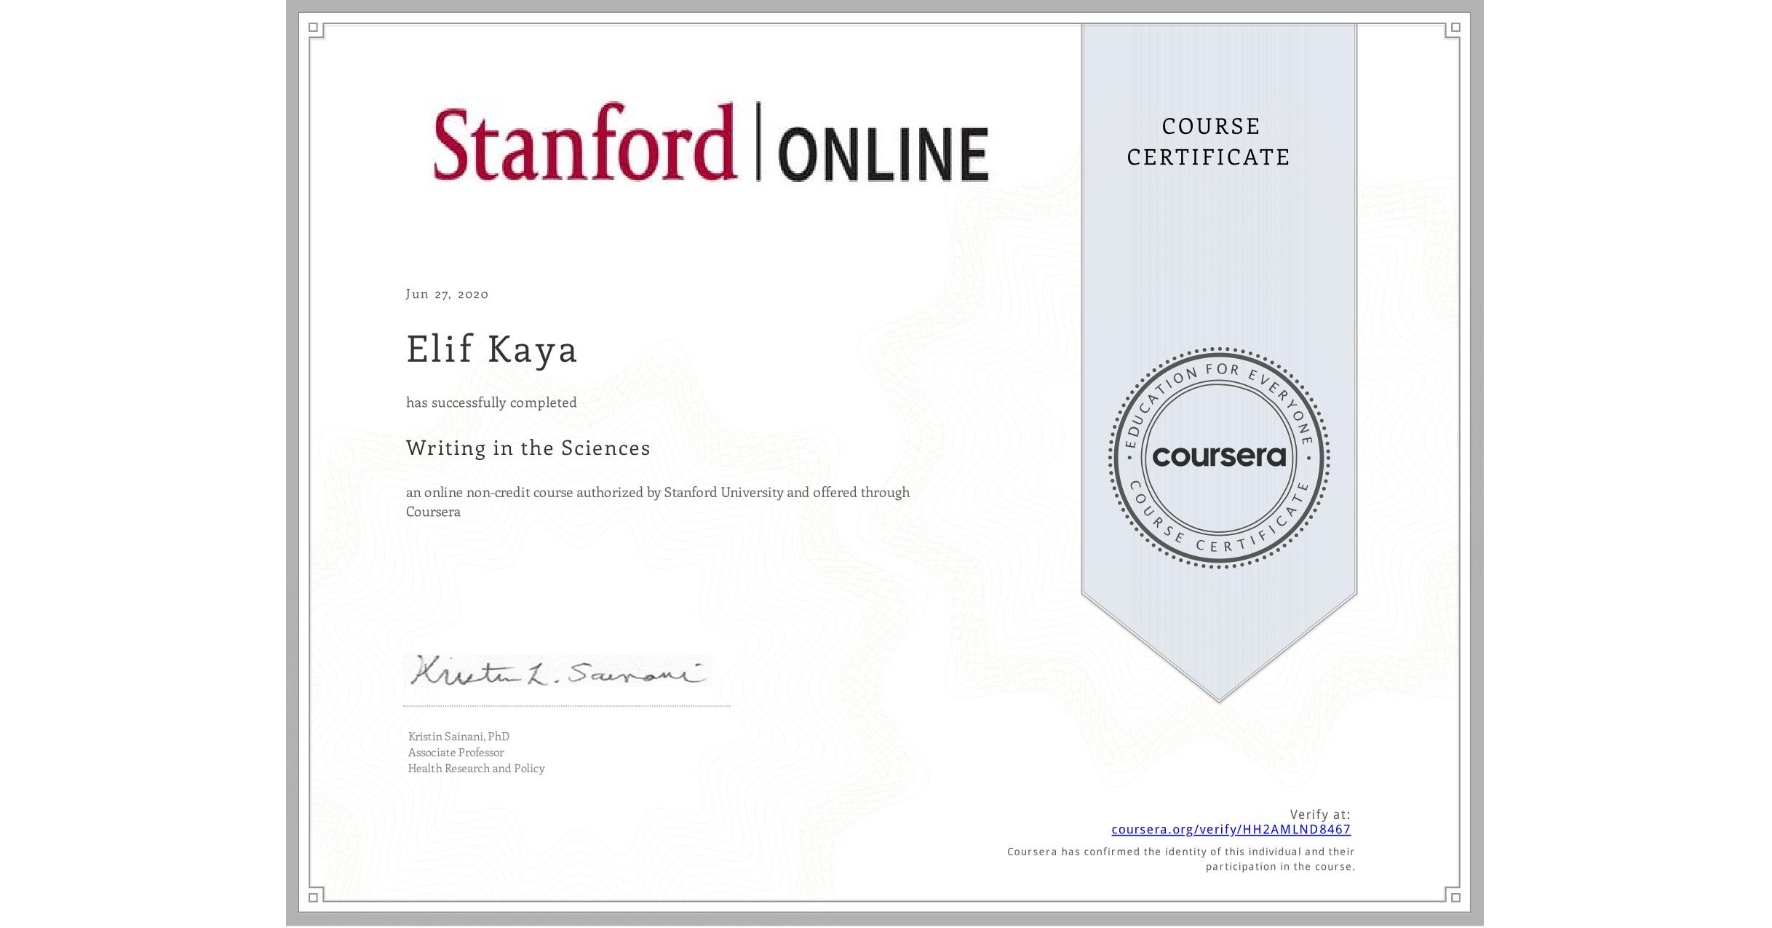 View certificate for Elif Kaya, Writing in the Sciences, an online non-credit course authorized by Stanford University and offered through Coursera